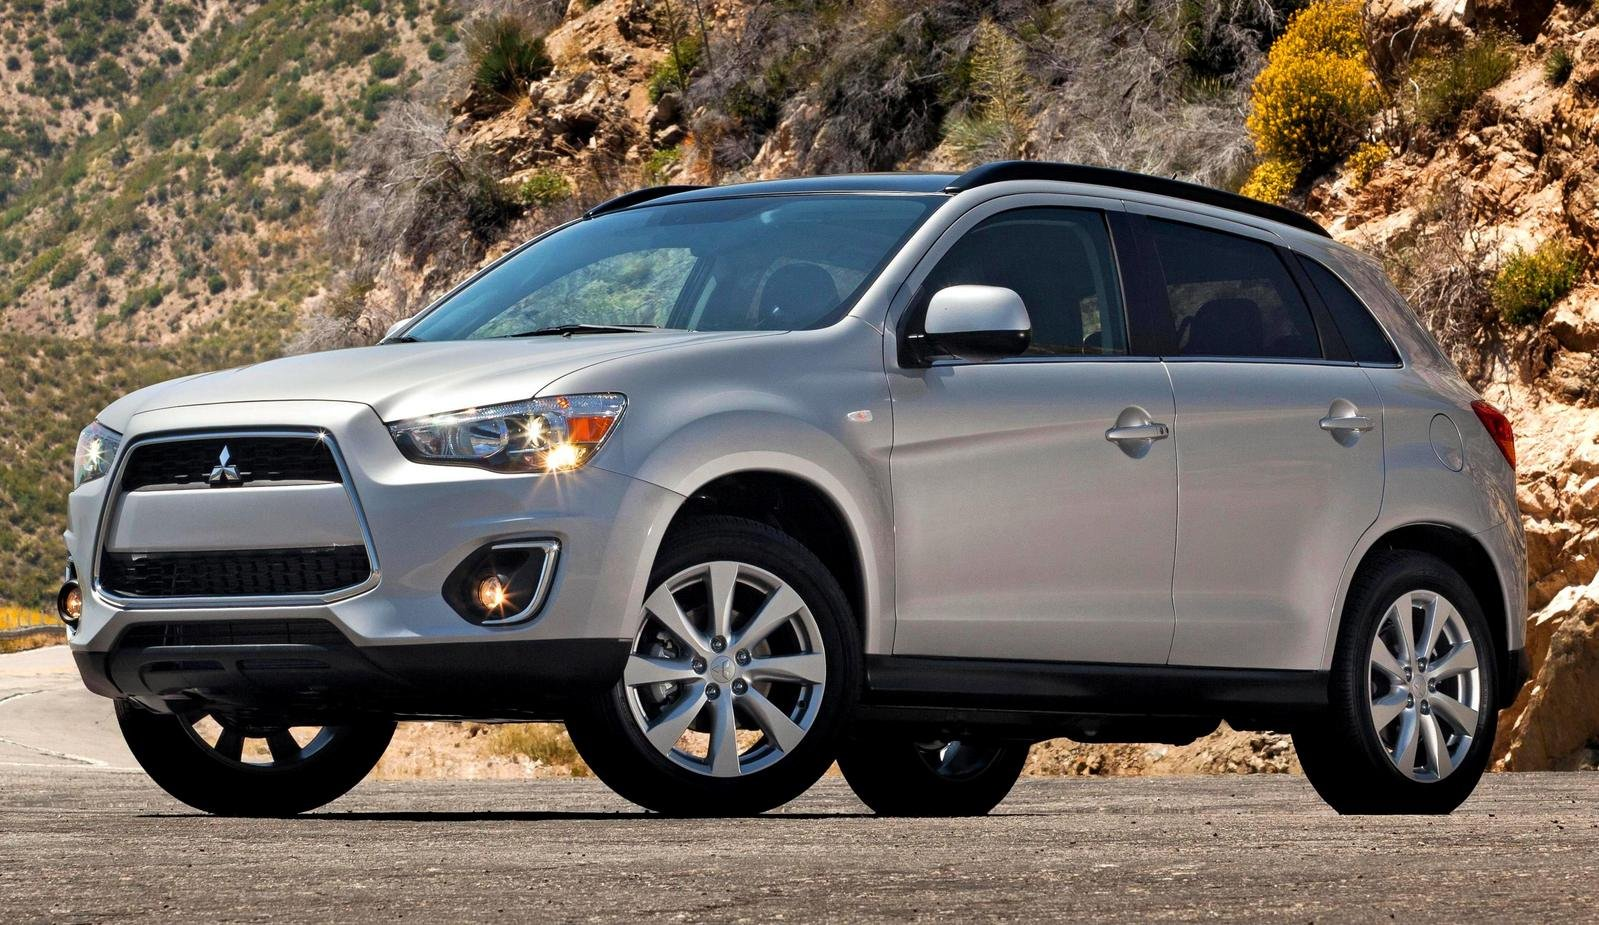 2014 mitsubishi outlander sport picture 523852 car review top speed. Black Bedroom Furniture Sets. Home Design Ideas